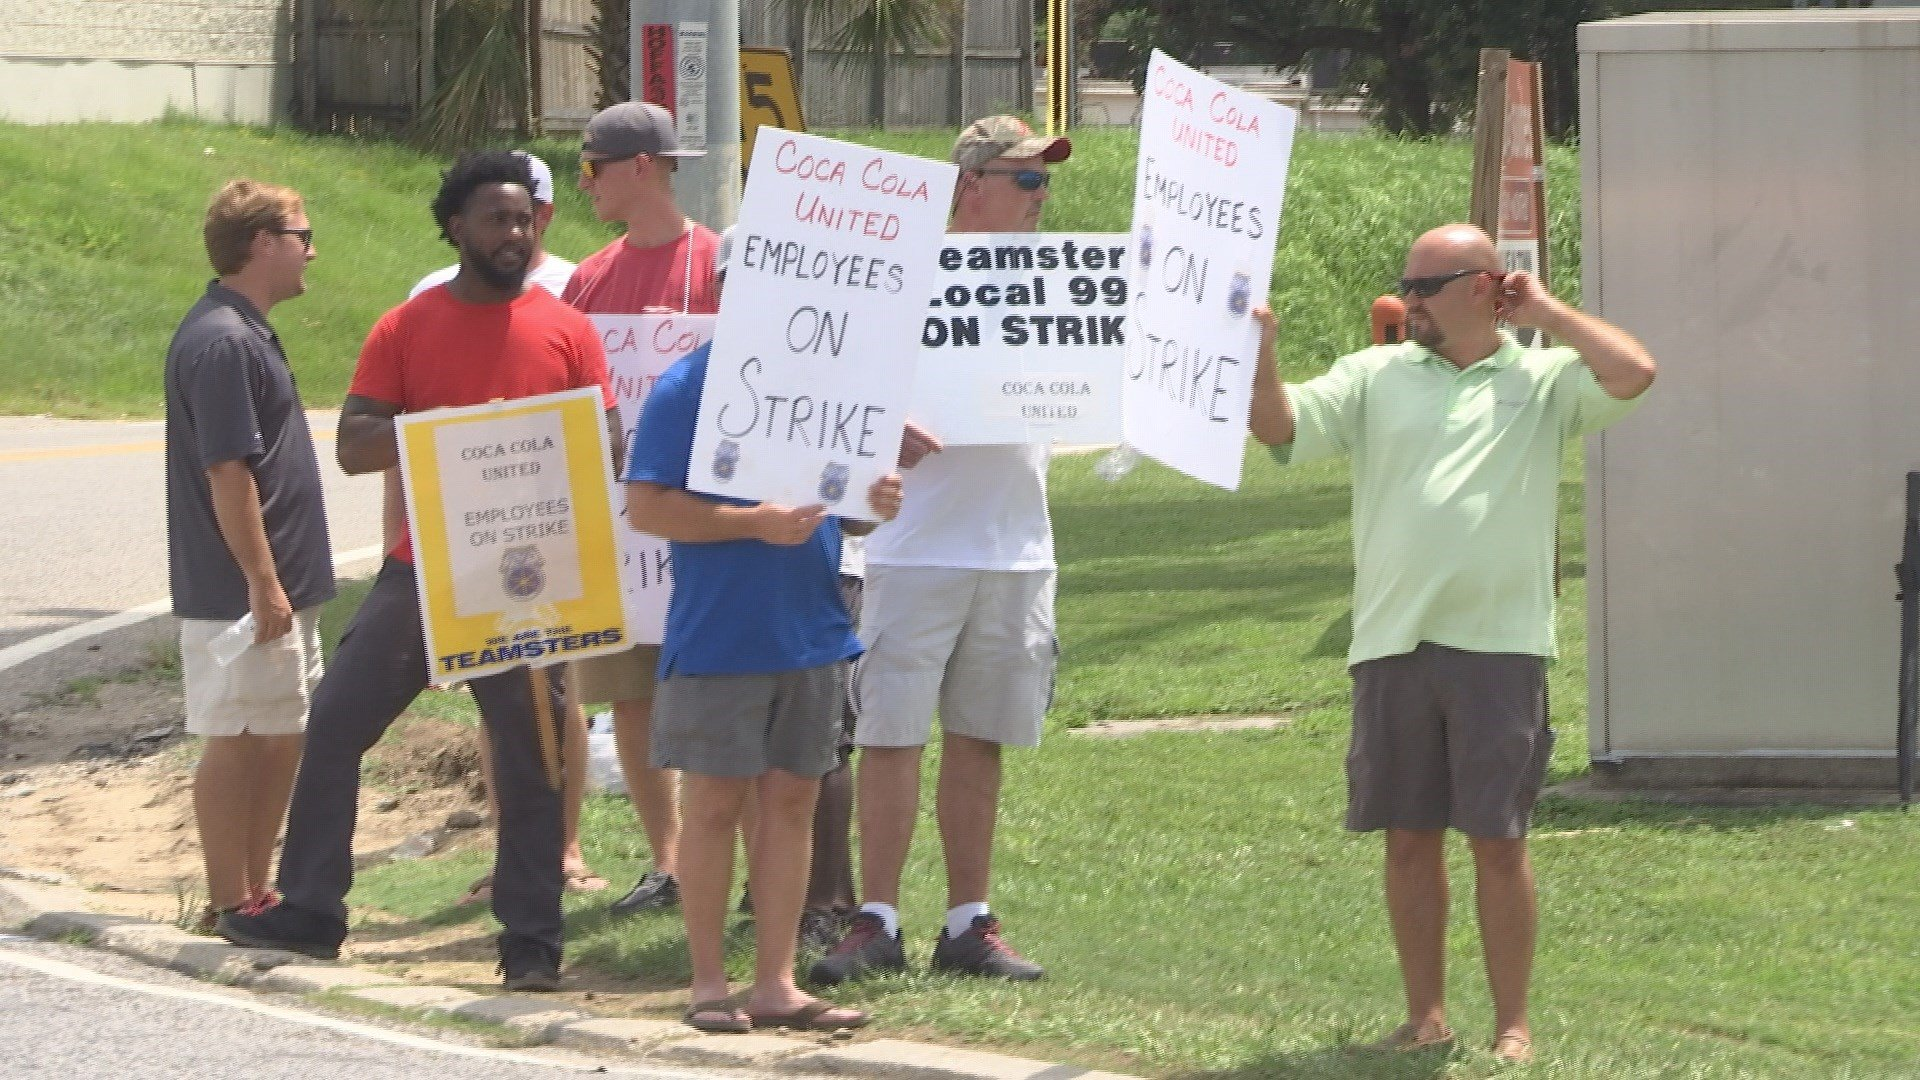 Coca-Cola workers are on strike over wages and benefits (Photo: Asha Staples, Reporter)